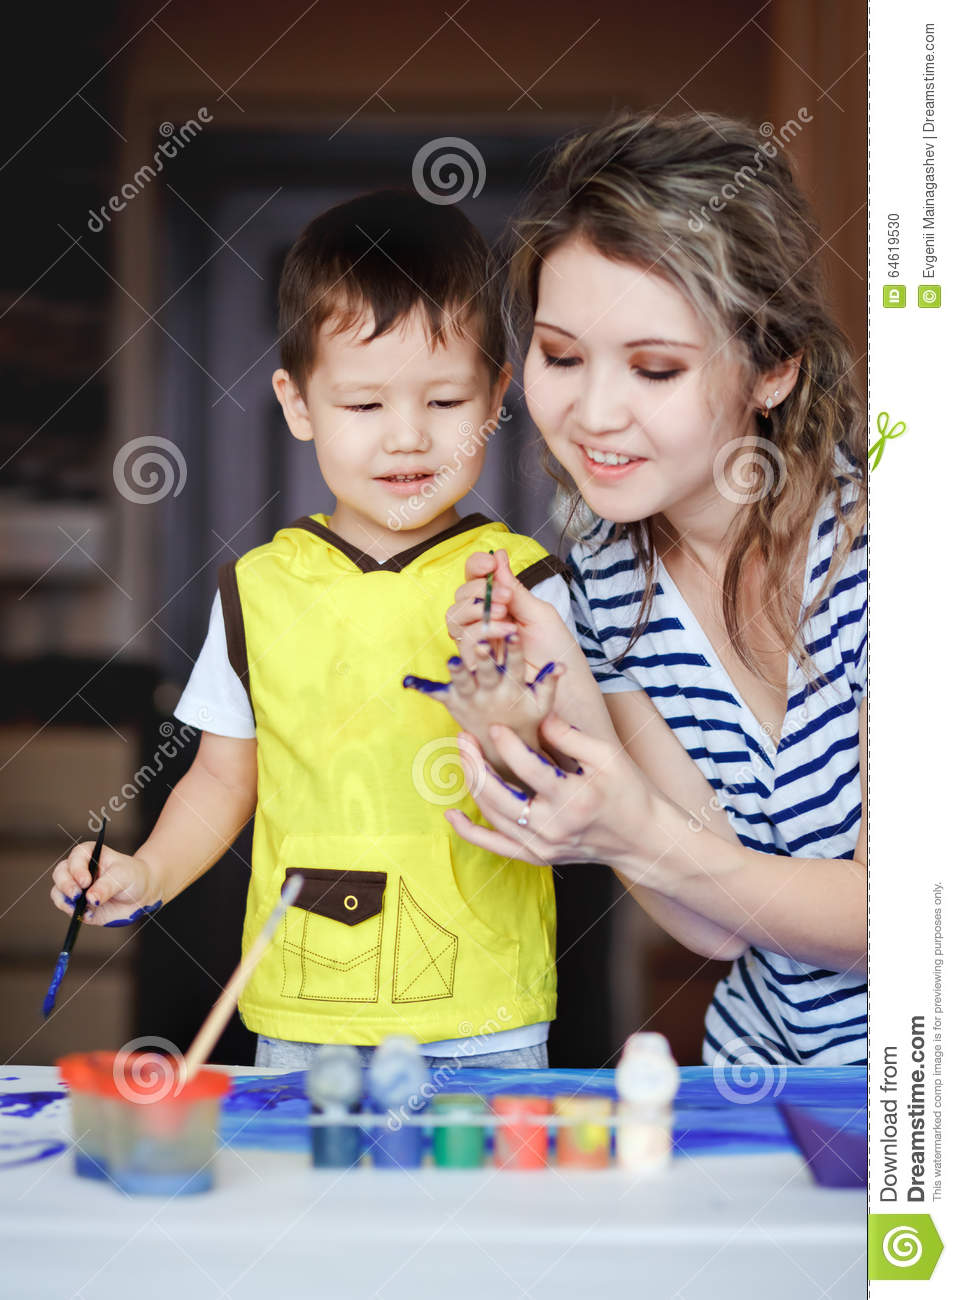 Entertaining childhood, a little boy playing with his mother, draws, paints on the palms.